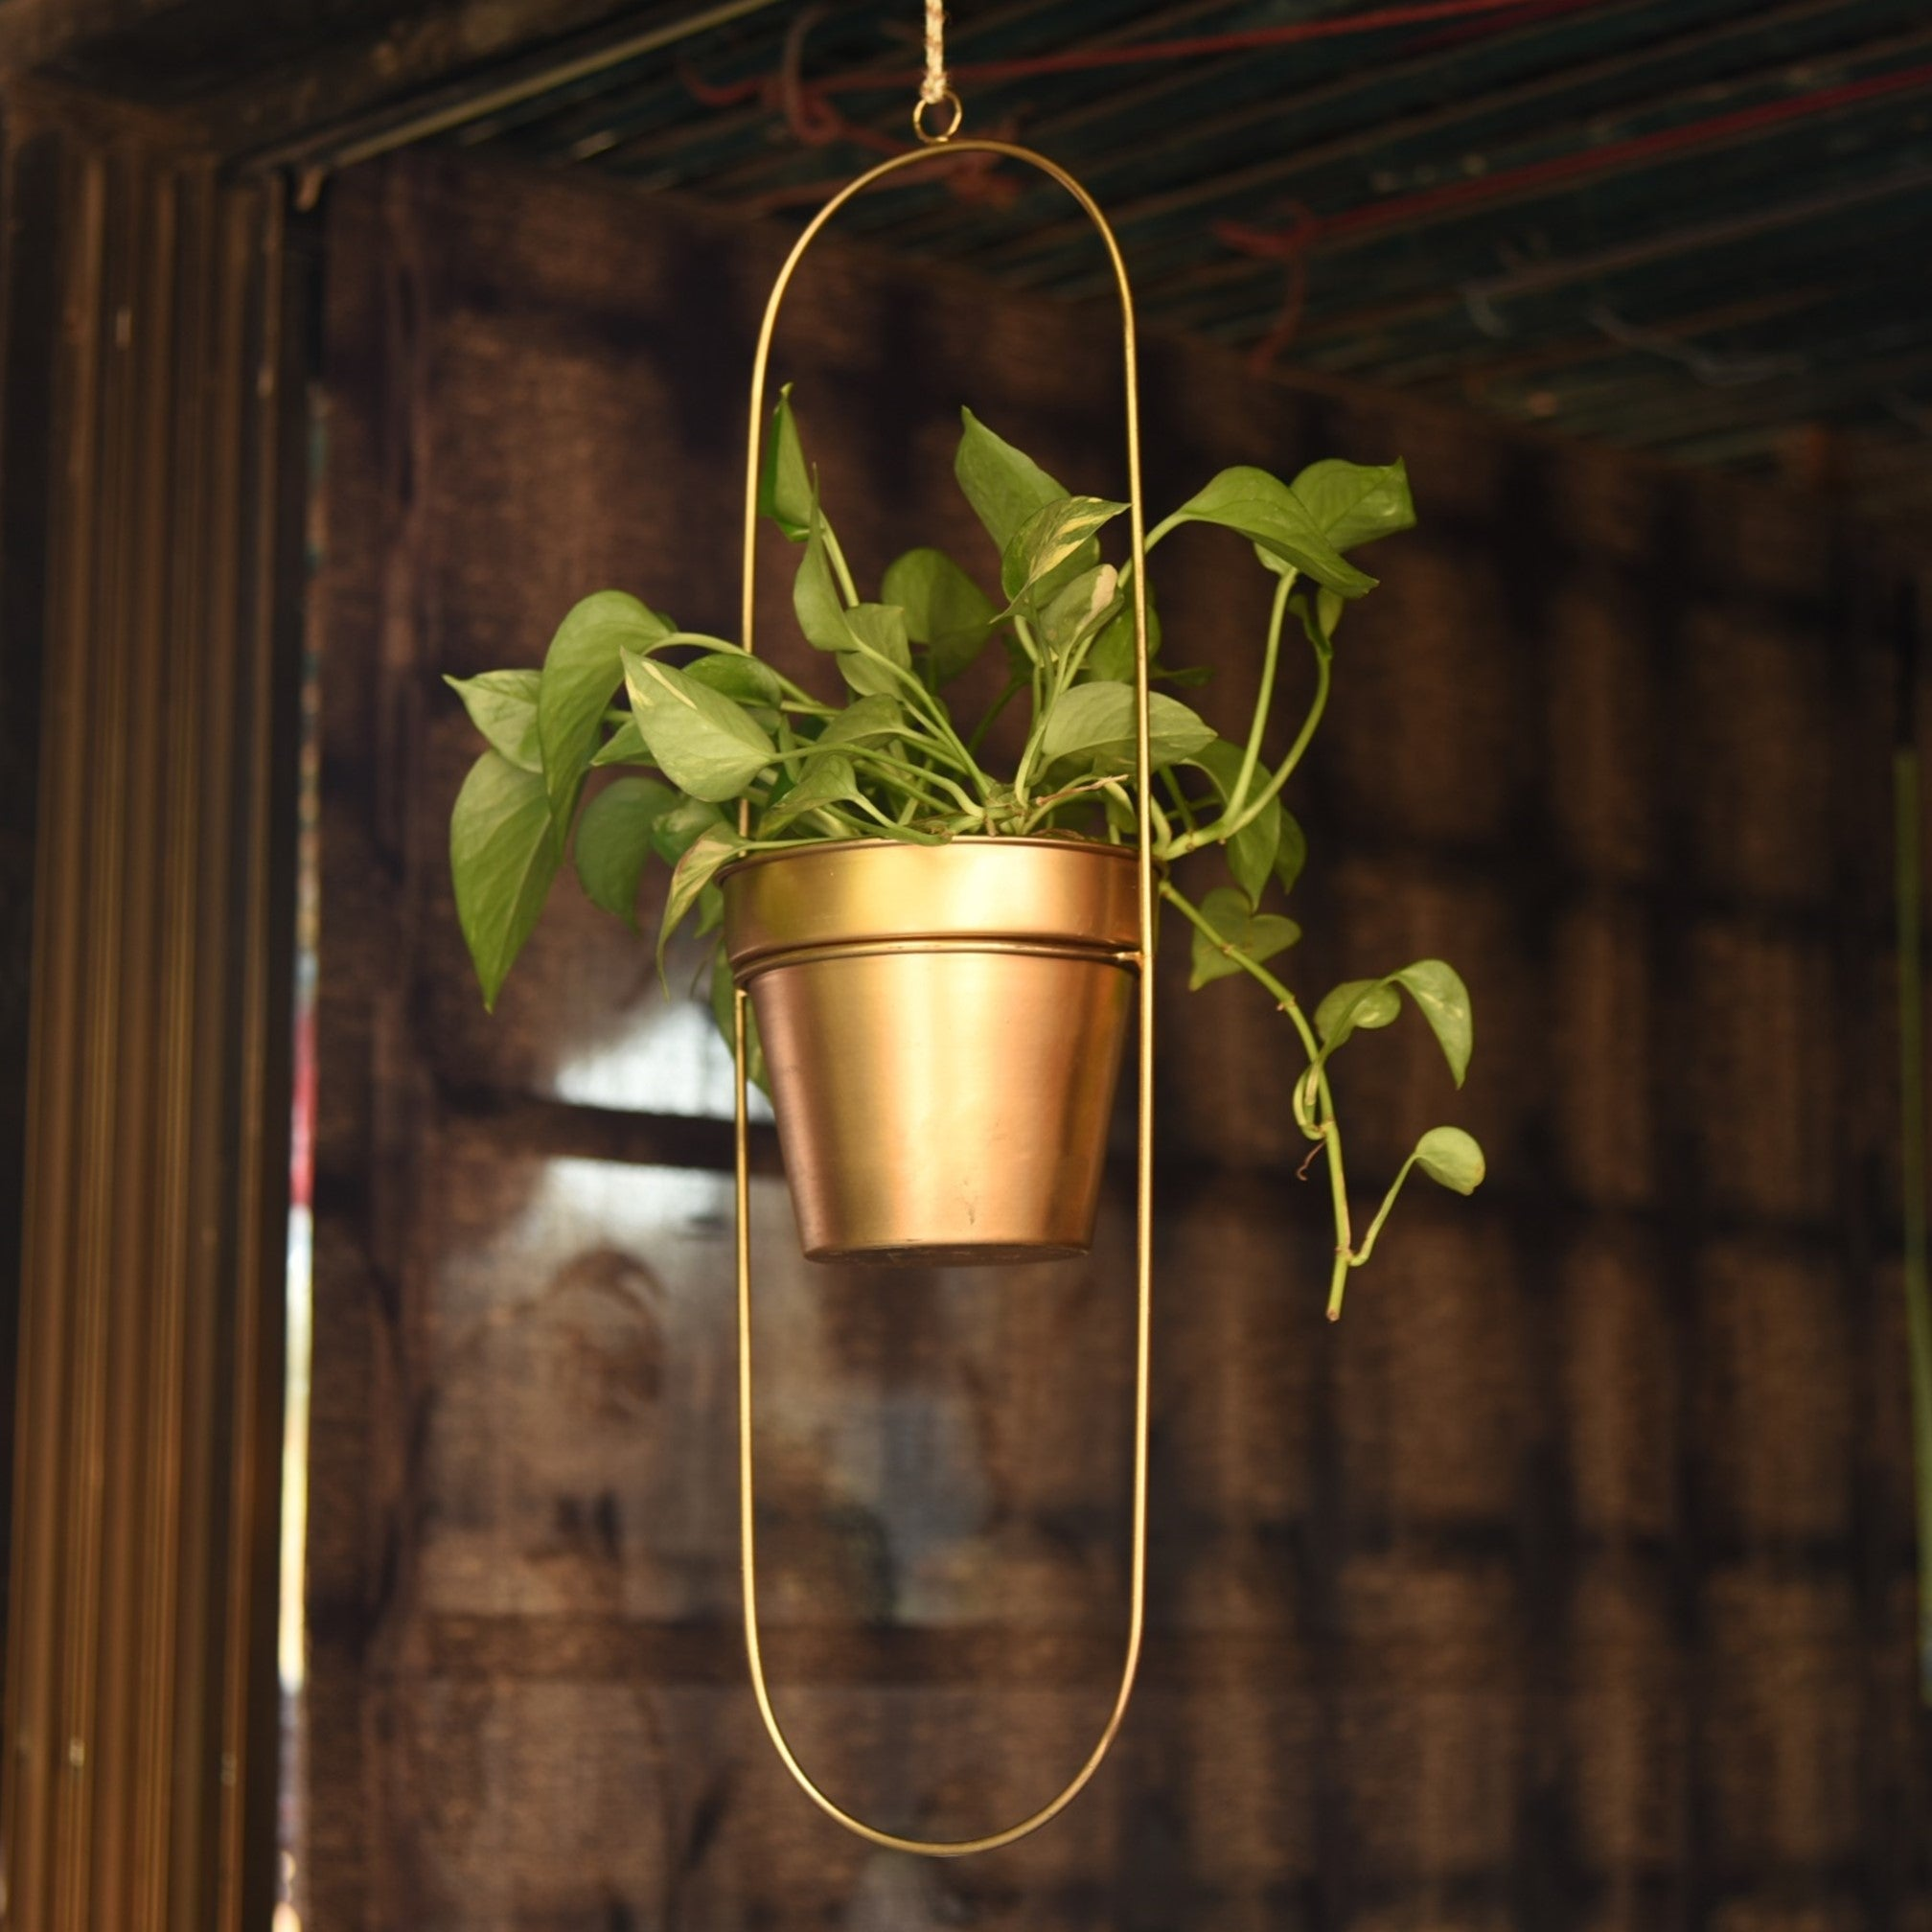 """Capsule"" Oval Shaped Hanging Metal Planter in Gold Finish 1 BHK Interiors"